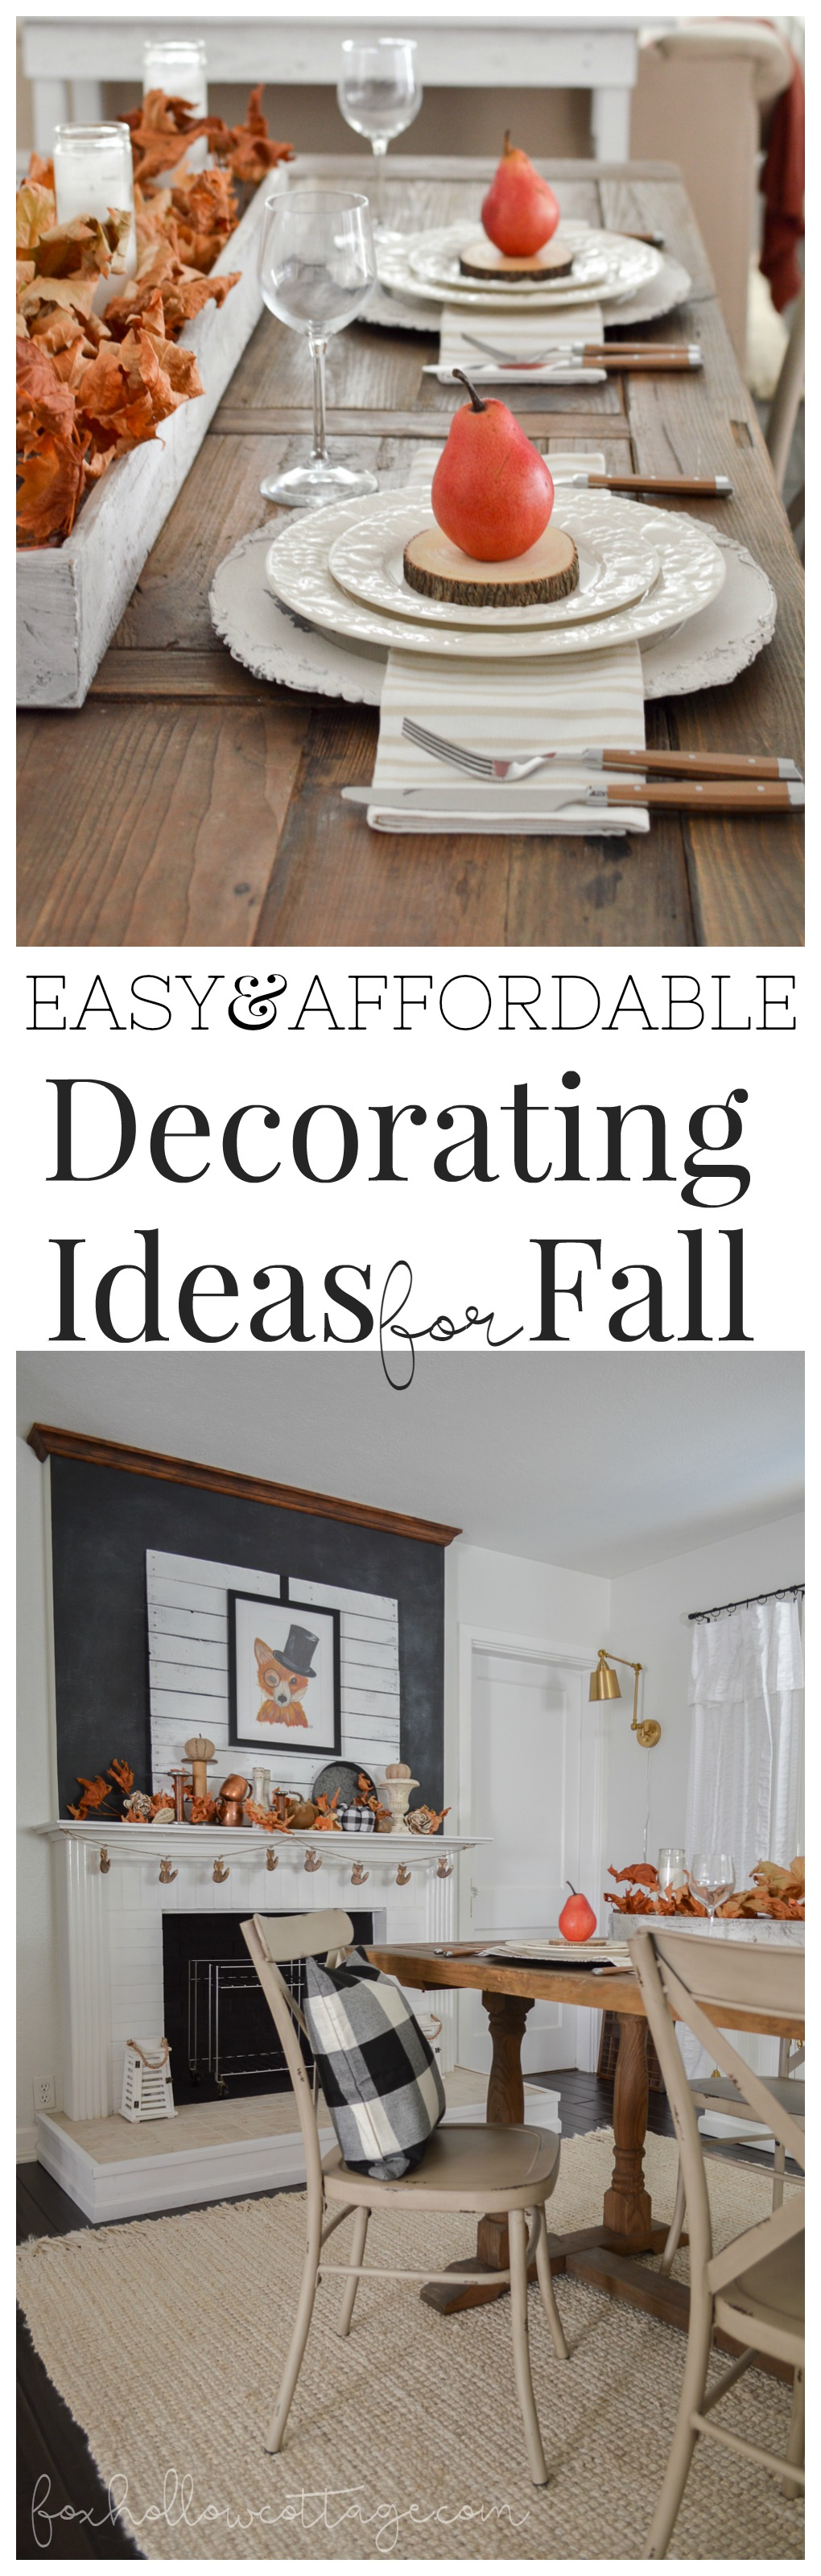 Easy Affordable Decorating Ideas for Fall www.foxhollowcottage.com - cottage farmhouse style farm table fireplace mantel